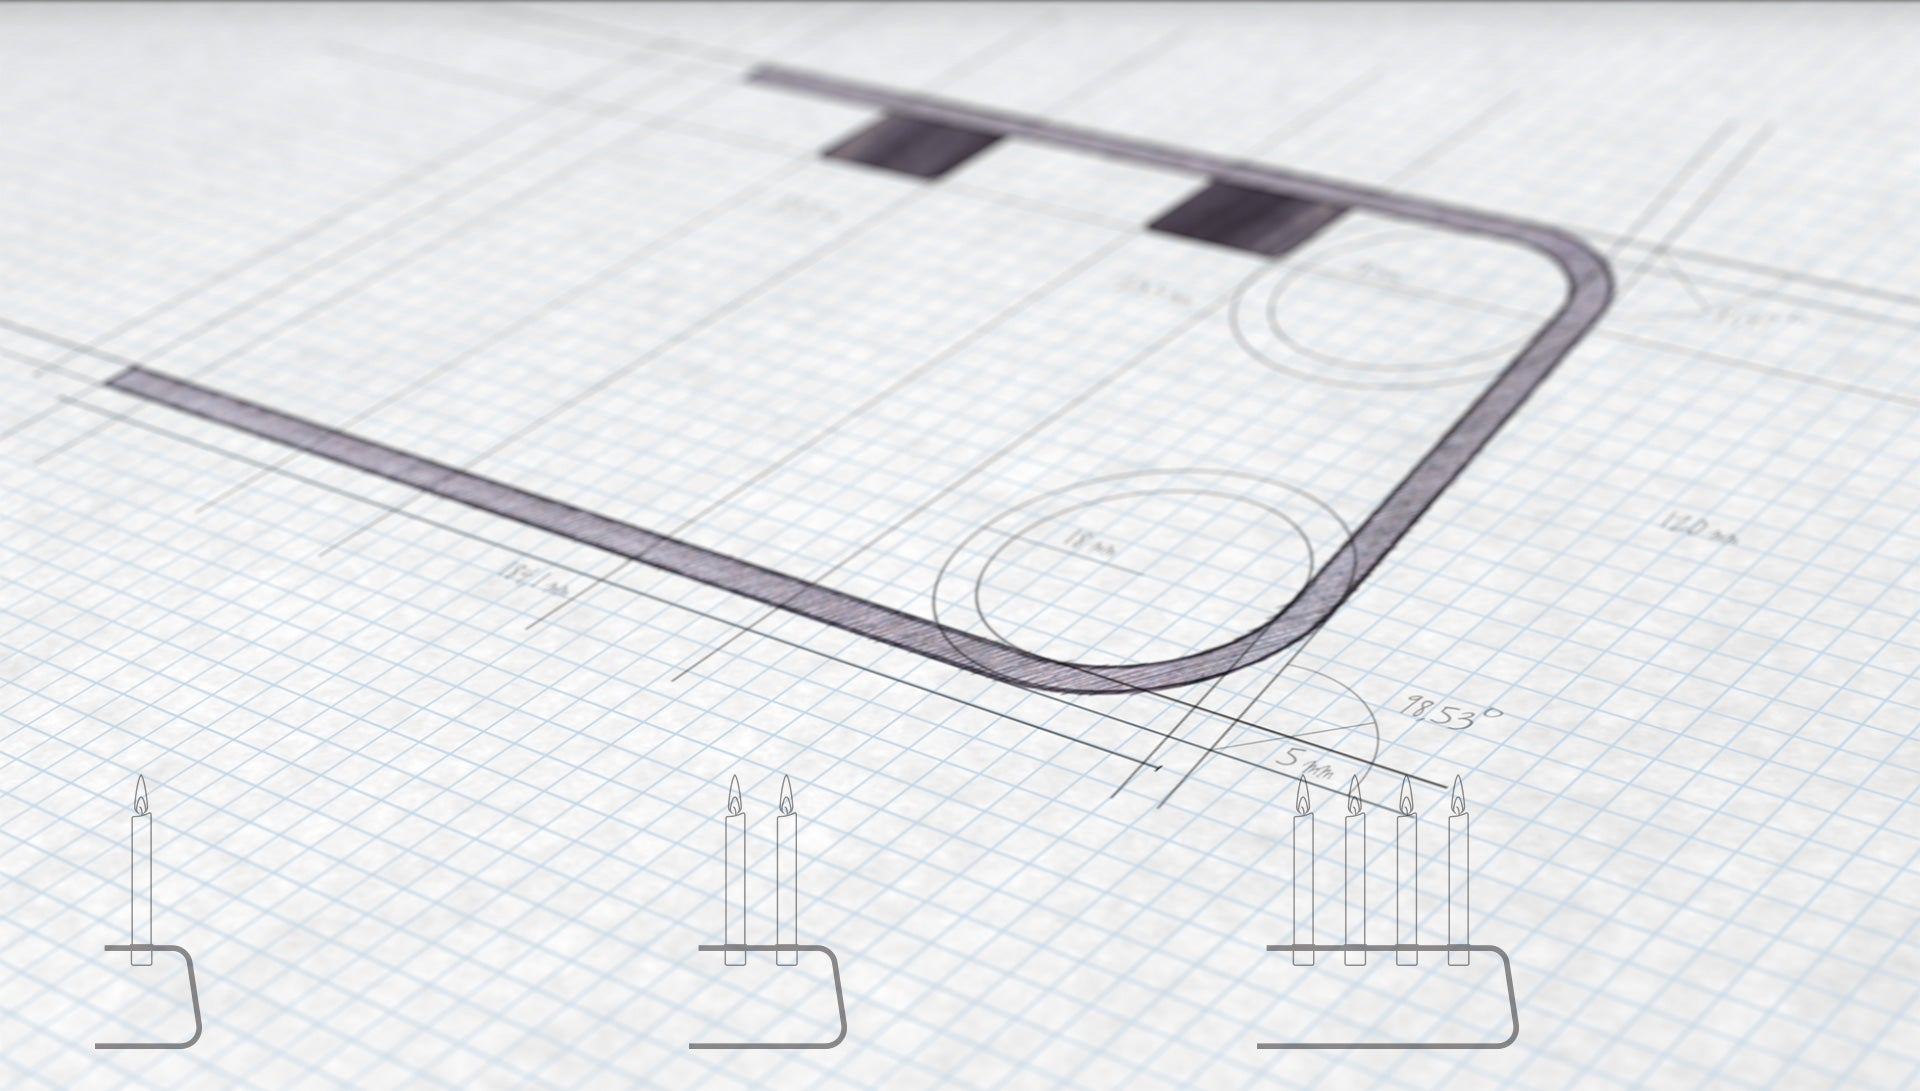 Vnkl 2 sketch and technical drawing with dimentions